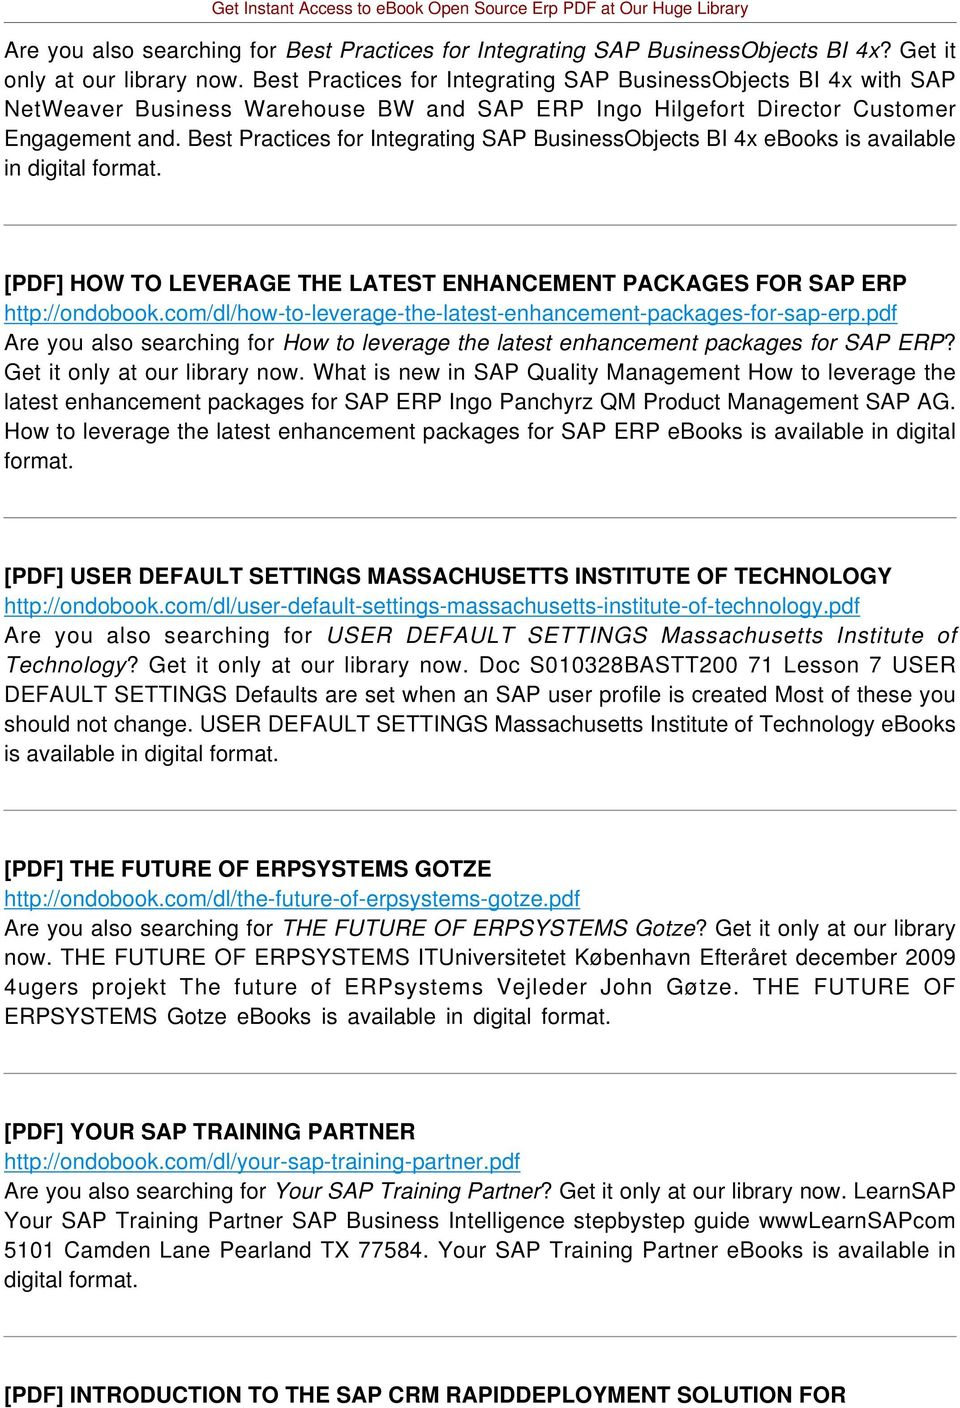 Best Practices for Integrating SAP BusinessObjects BI 4x ebooks is available in digital format. [PDF] HOW TO LEVERAGE THE LATEST ENHANCEMENT PACKAGES FOR SAP ERP http://ondobook.